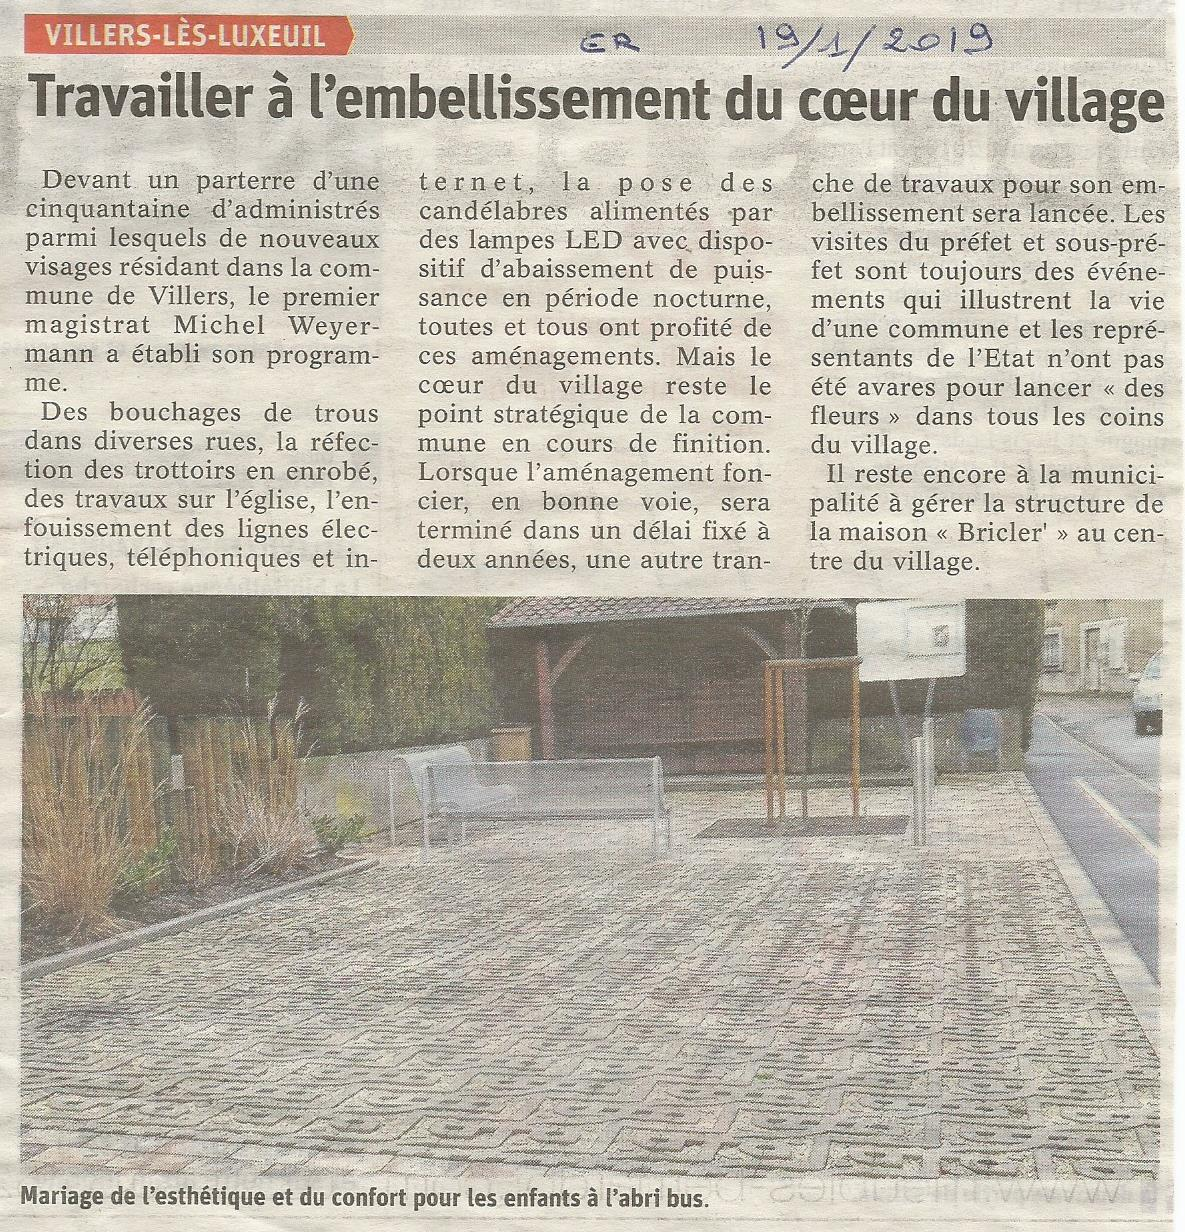 https://www.villers-les-luxeuil.com/projets/villers/files/images/2019_Mairie/Presse/Presse_2019_01_19.jpg